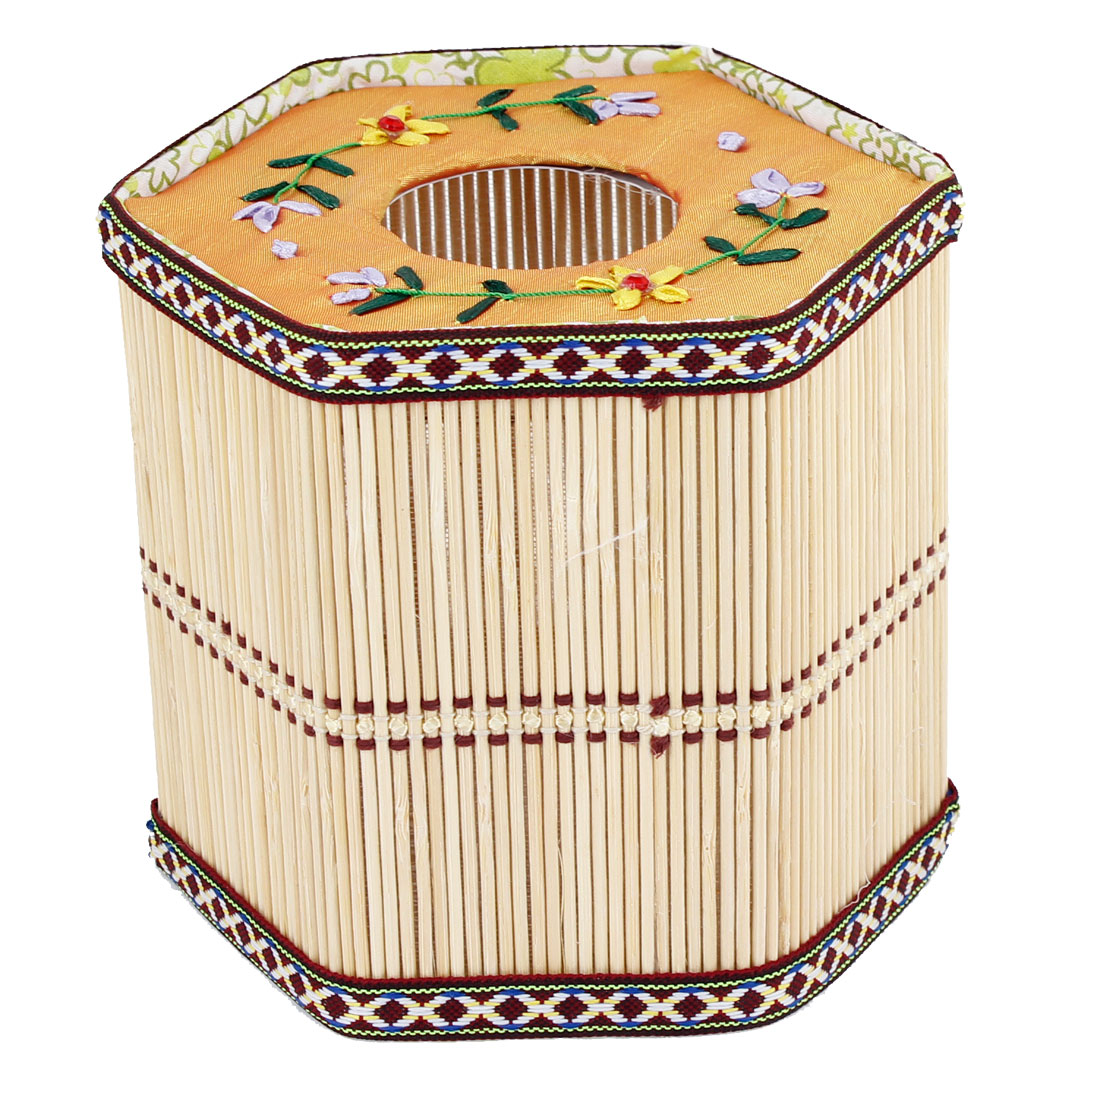 Home Beige Embroidered Cover Bamboo Tissue Box Holder Paper Container